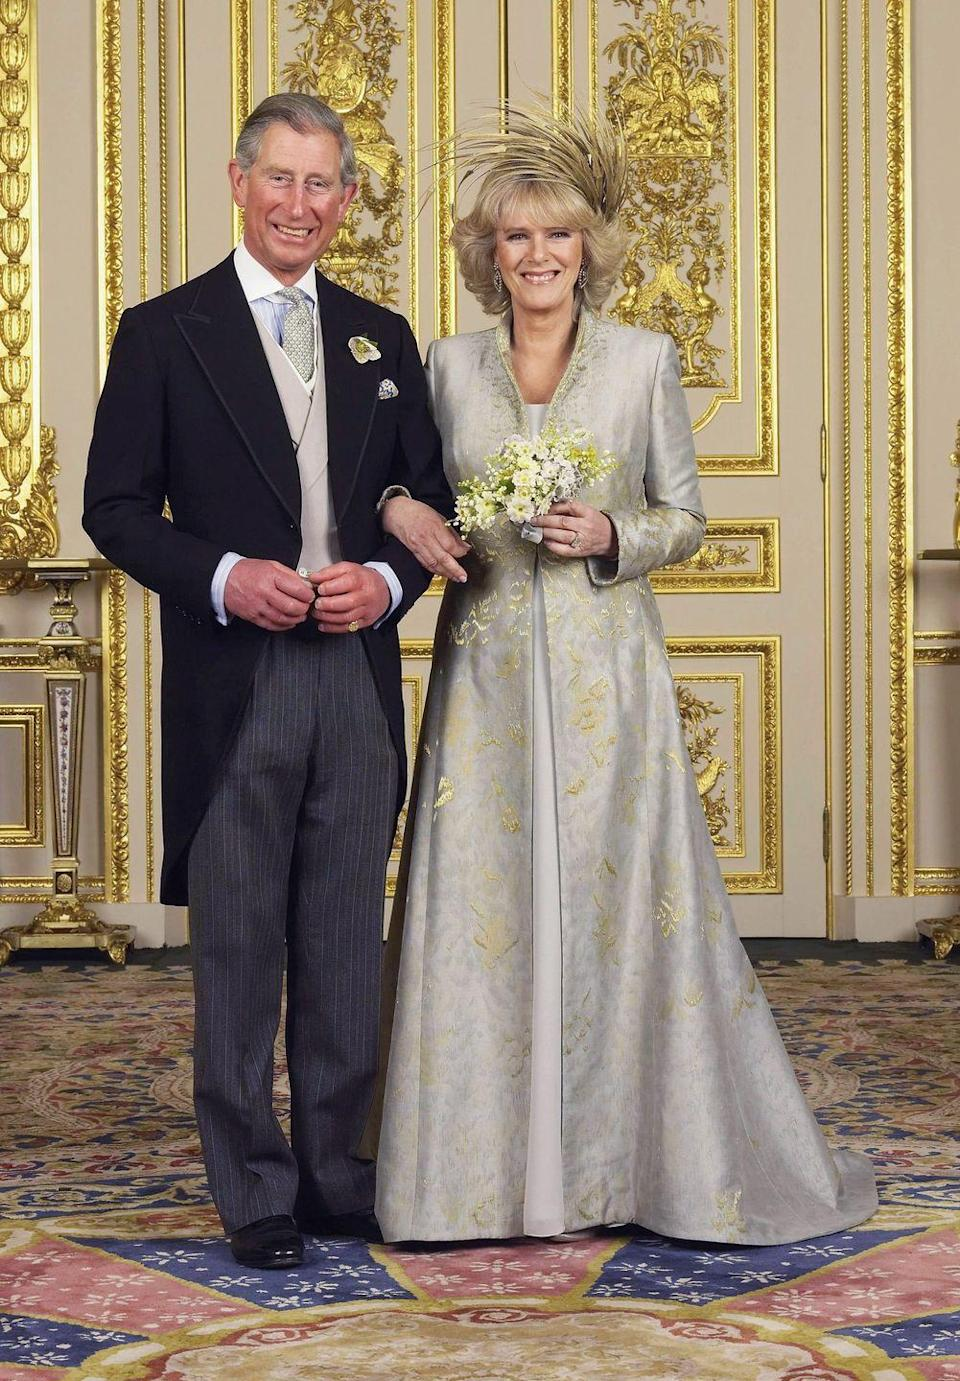 <p>For Camilla Parker Bowles' long-awaited wedding to the apparent heir of the British throne, she wore a light-blue chiffon dress beneath a blue-gold embellished dress coat–both by designer Anne Valentine. Rather than wearing a crown, Camilla went with an intricate headdress made of golden feathers by Ellen Tracey.</p>